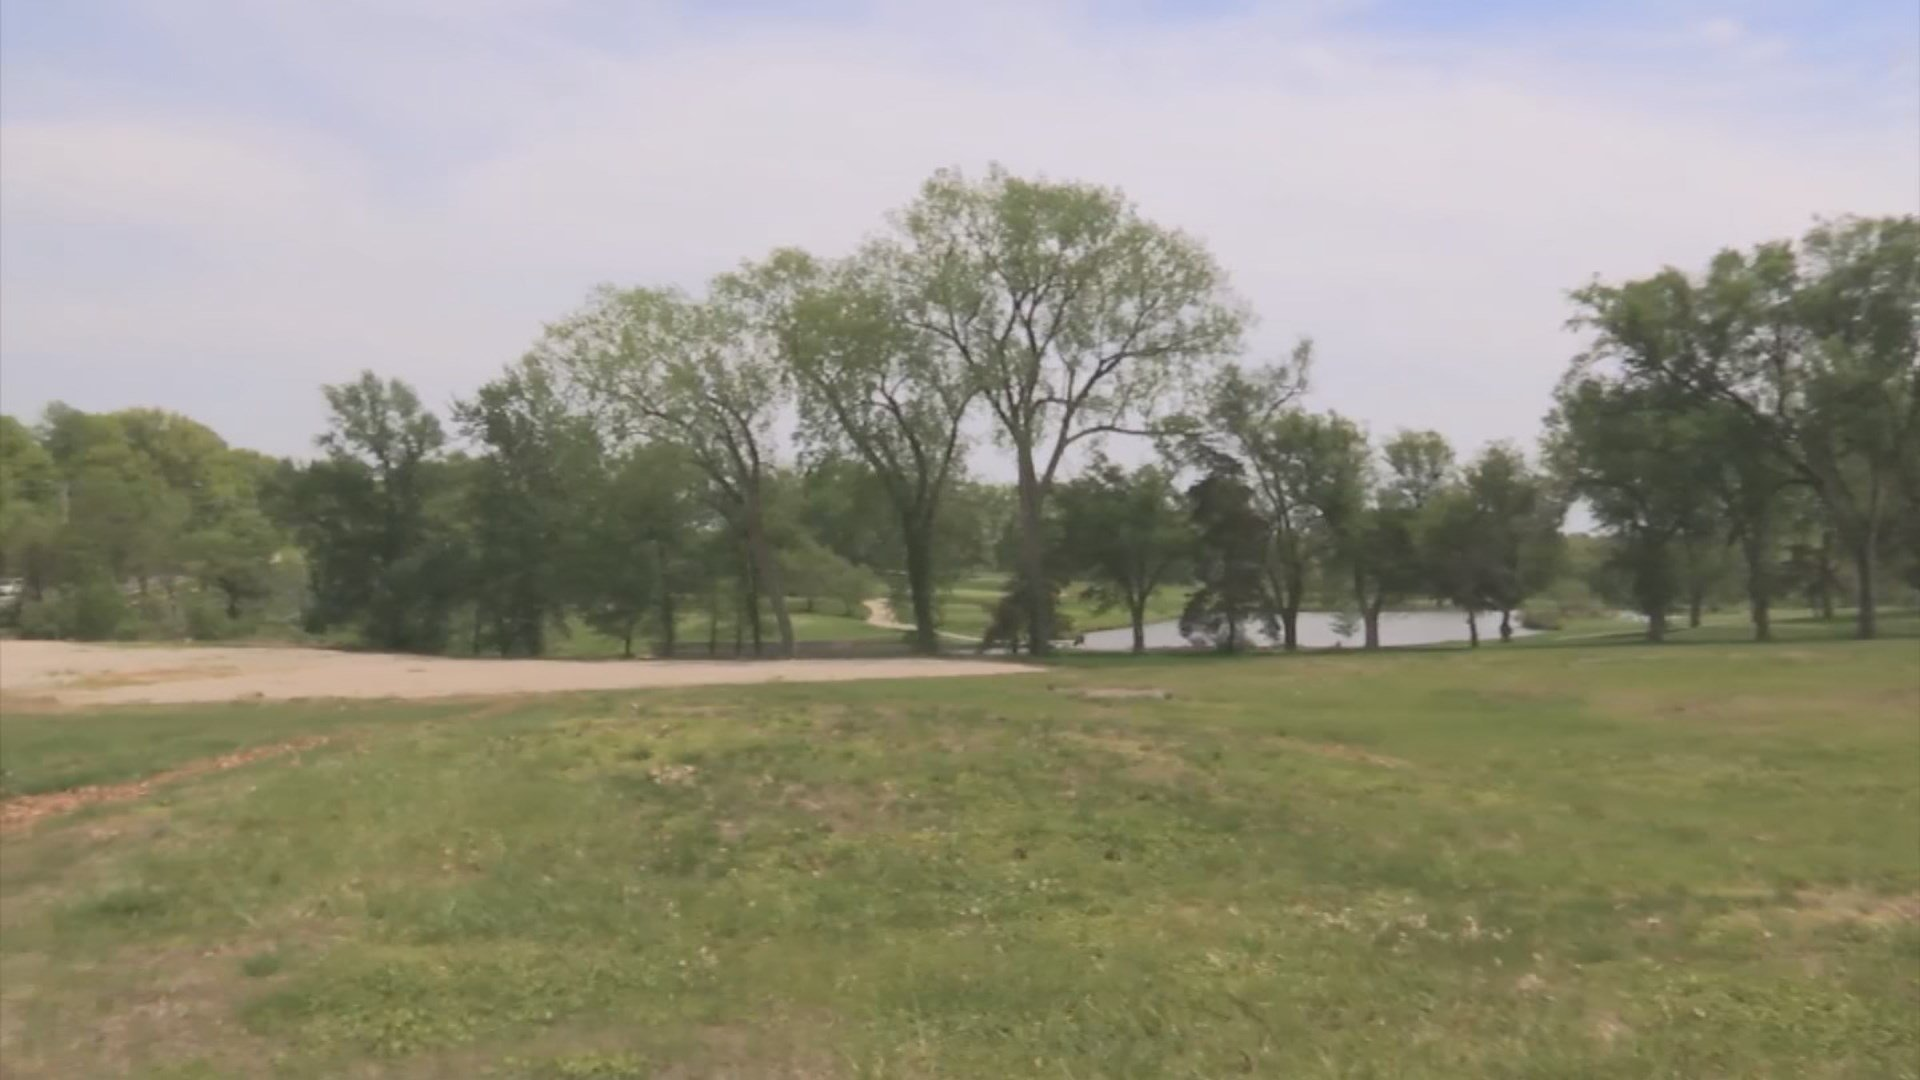 Another setback for what was formerly the Brookridge Golf Course in Overland Park. Plans to develop it into retail and residential space have stalled once again. (KCTV5)